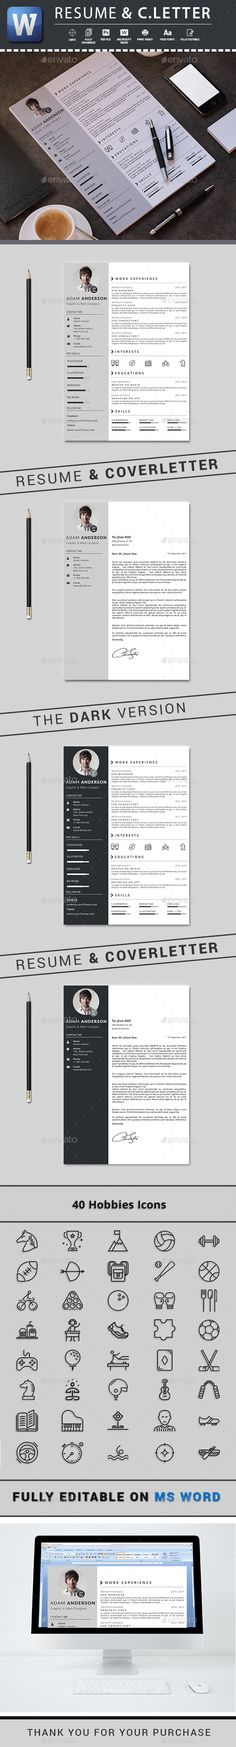 Software Engineer Resume Sample Pdf Resume  Modern Resume Template Modern Resume And Cv Template Career Management Resume Services with Bullet Points For Resume Cv By Thegraphichive Resume Resume Is The Super Clean Modern And  Professional Microsoft Office On Resume Word